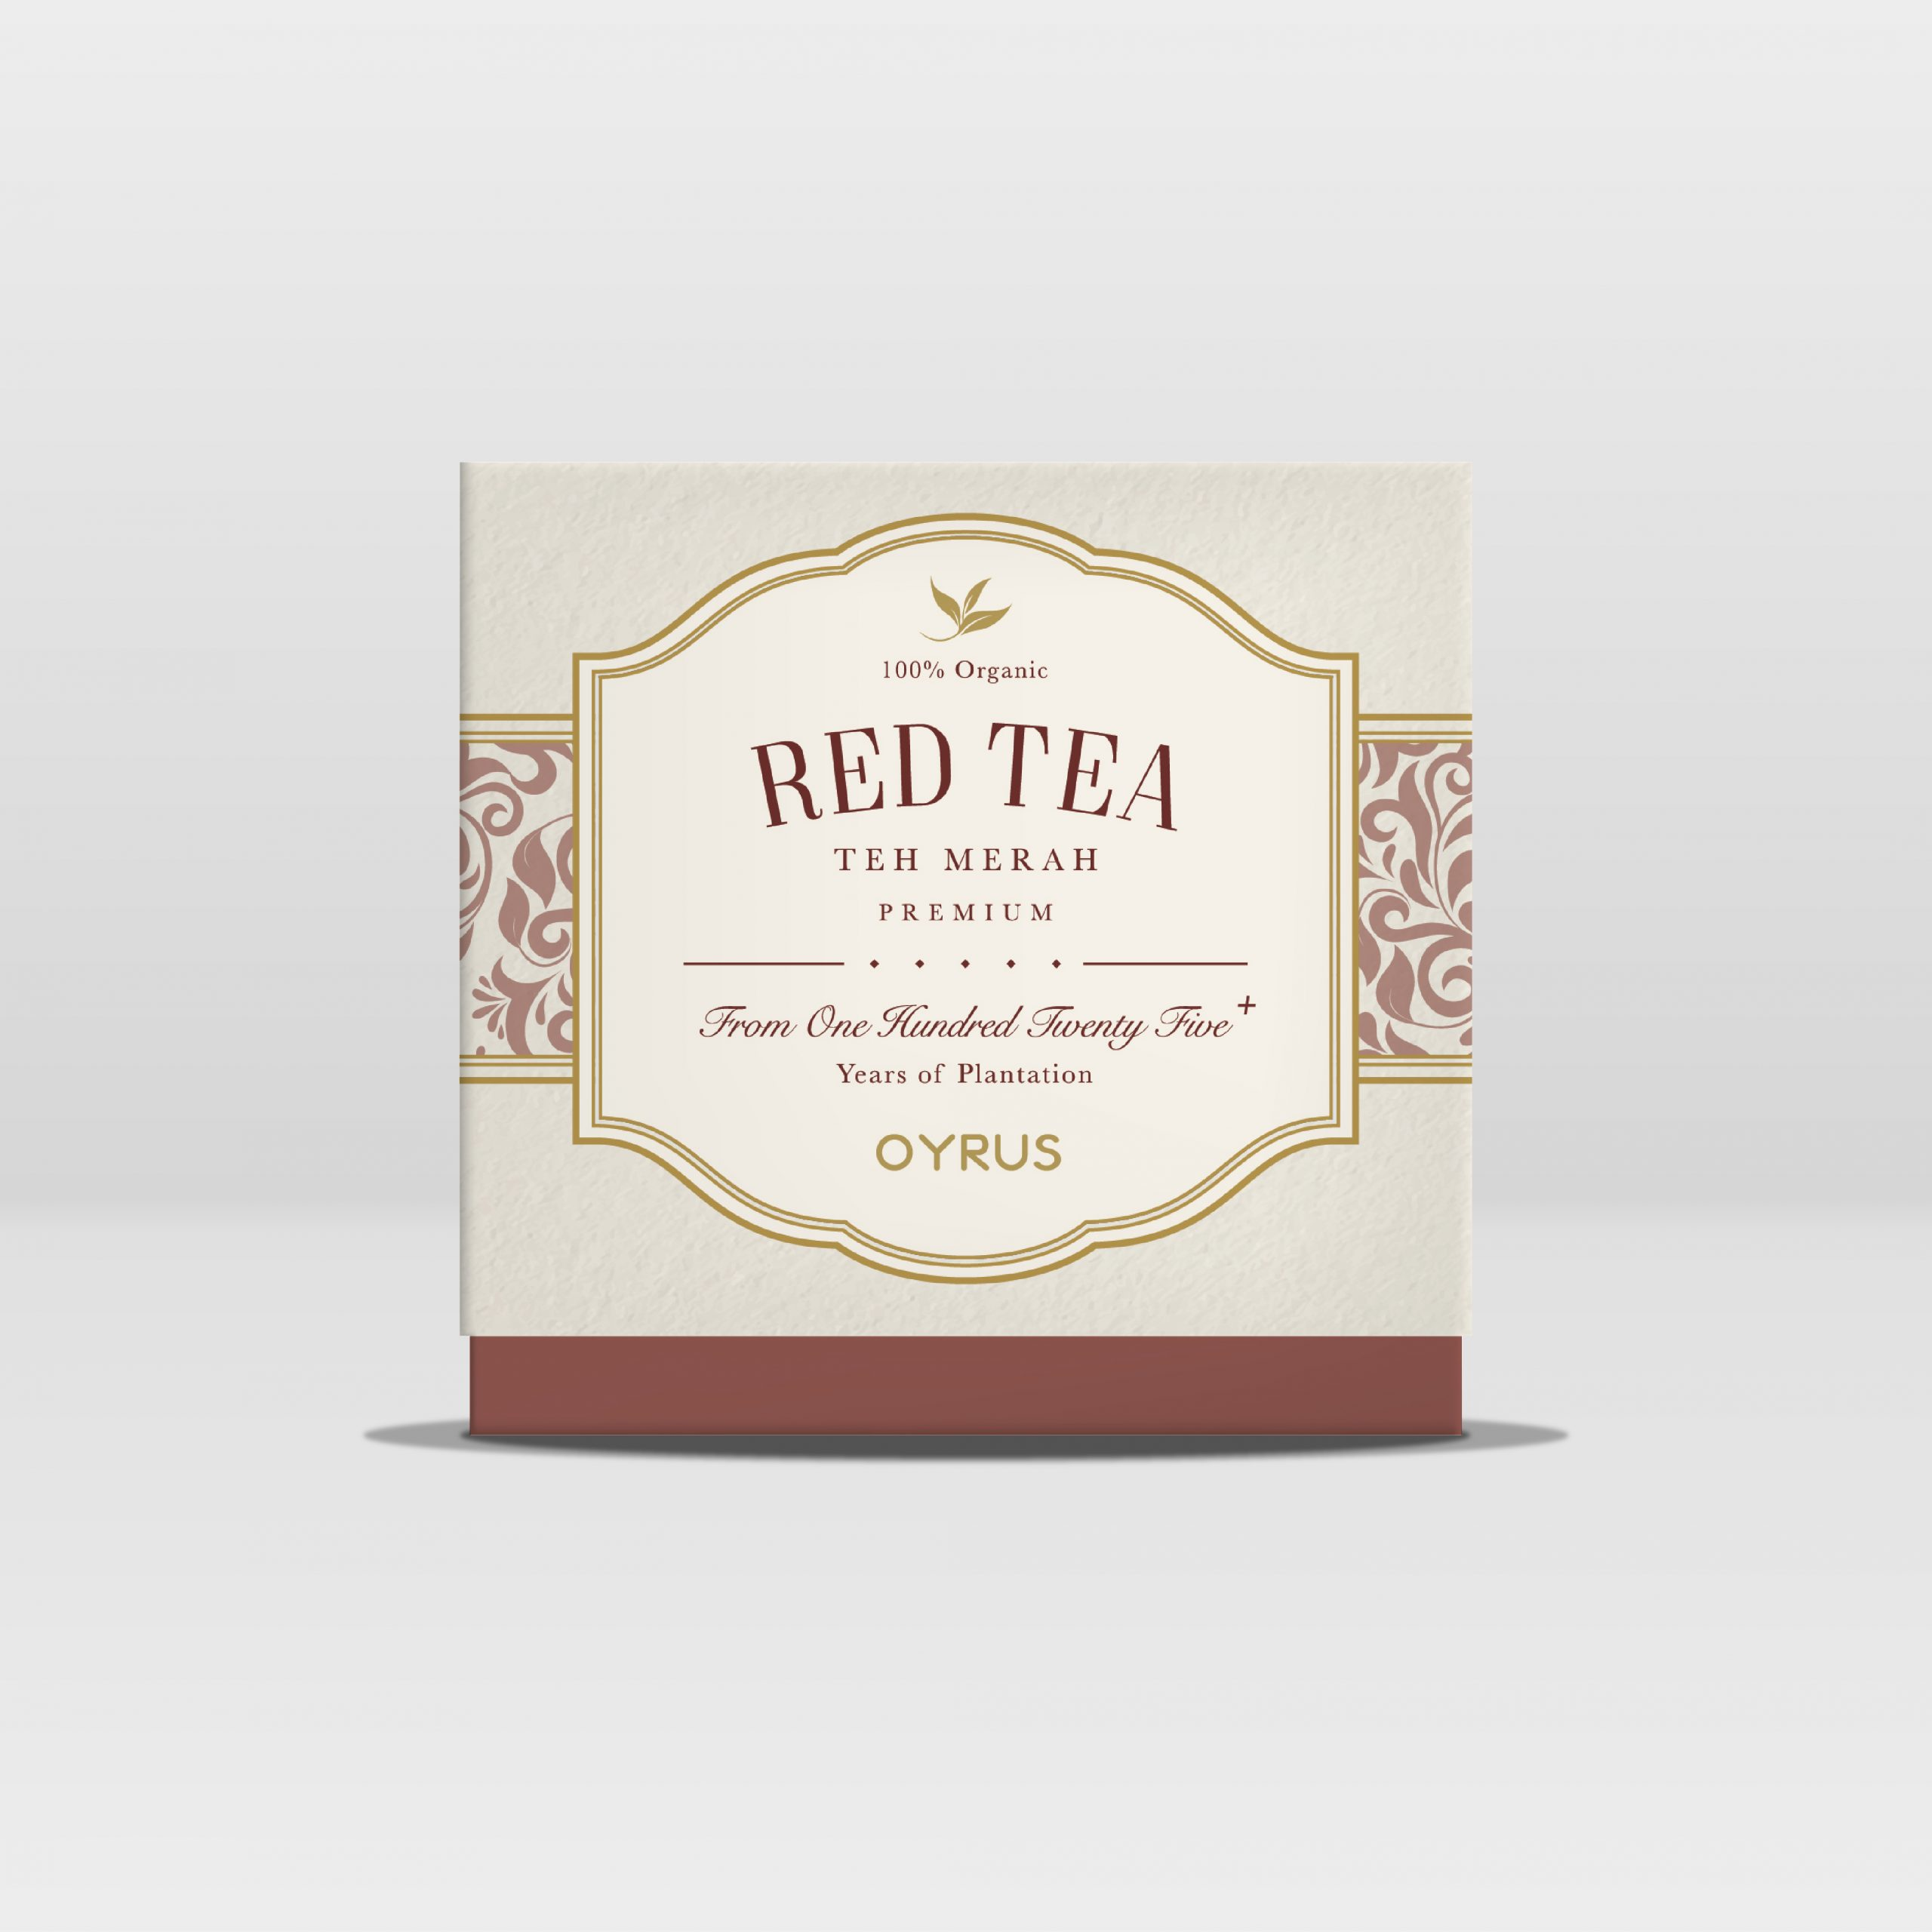 Oyrus Red Tea